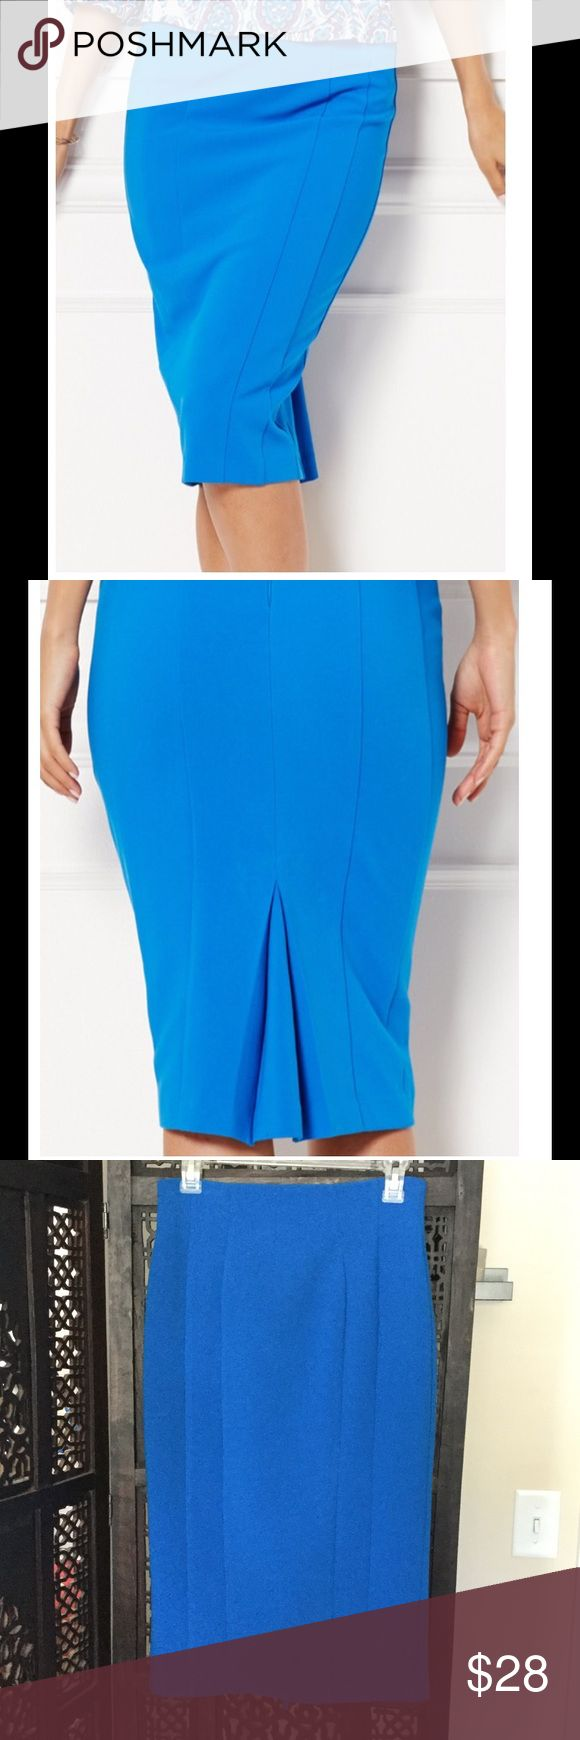 "NY&CO Eva Mendes pencil slim fit skirt bodycon This pencil skirt is tapered and gives anyone curves. BEWARE: High Voltage SEXY. The blue on this skirt is vibrant and best described as electric blue. Back slit is pleated, and will not show slip. In excellent used condition. Comes from smoke and pet free home. Measurements width 14"" length 28"" New York & Company Skirts Pencil"